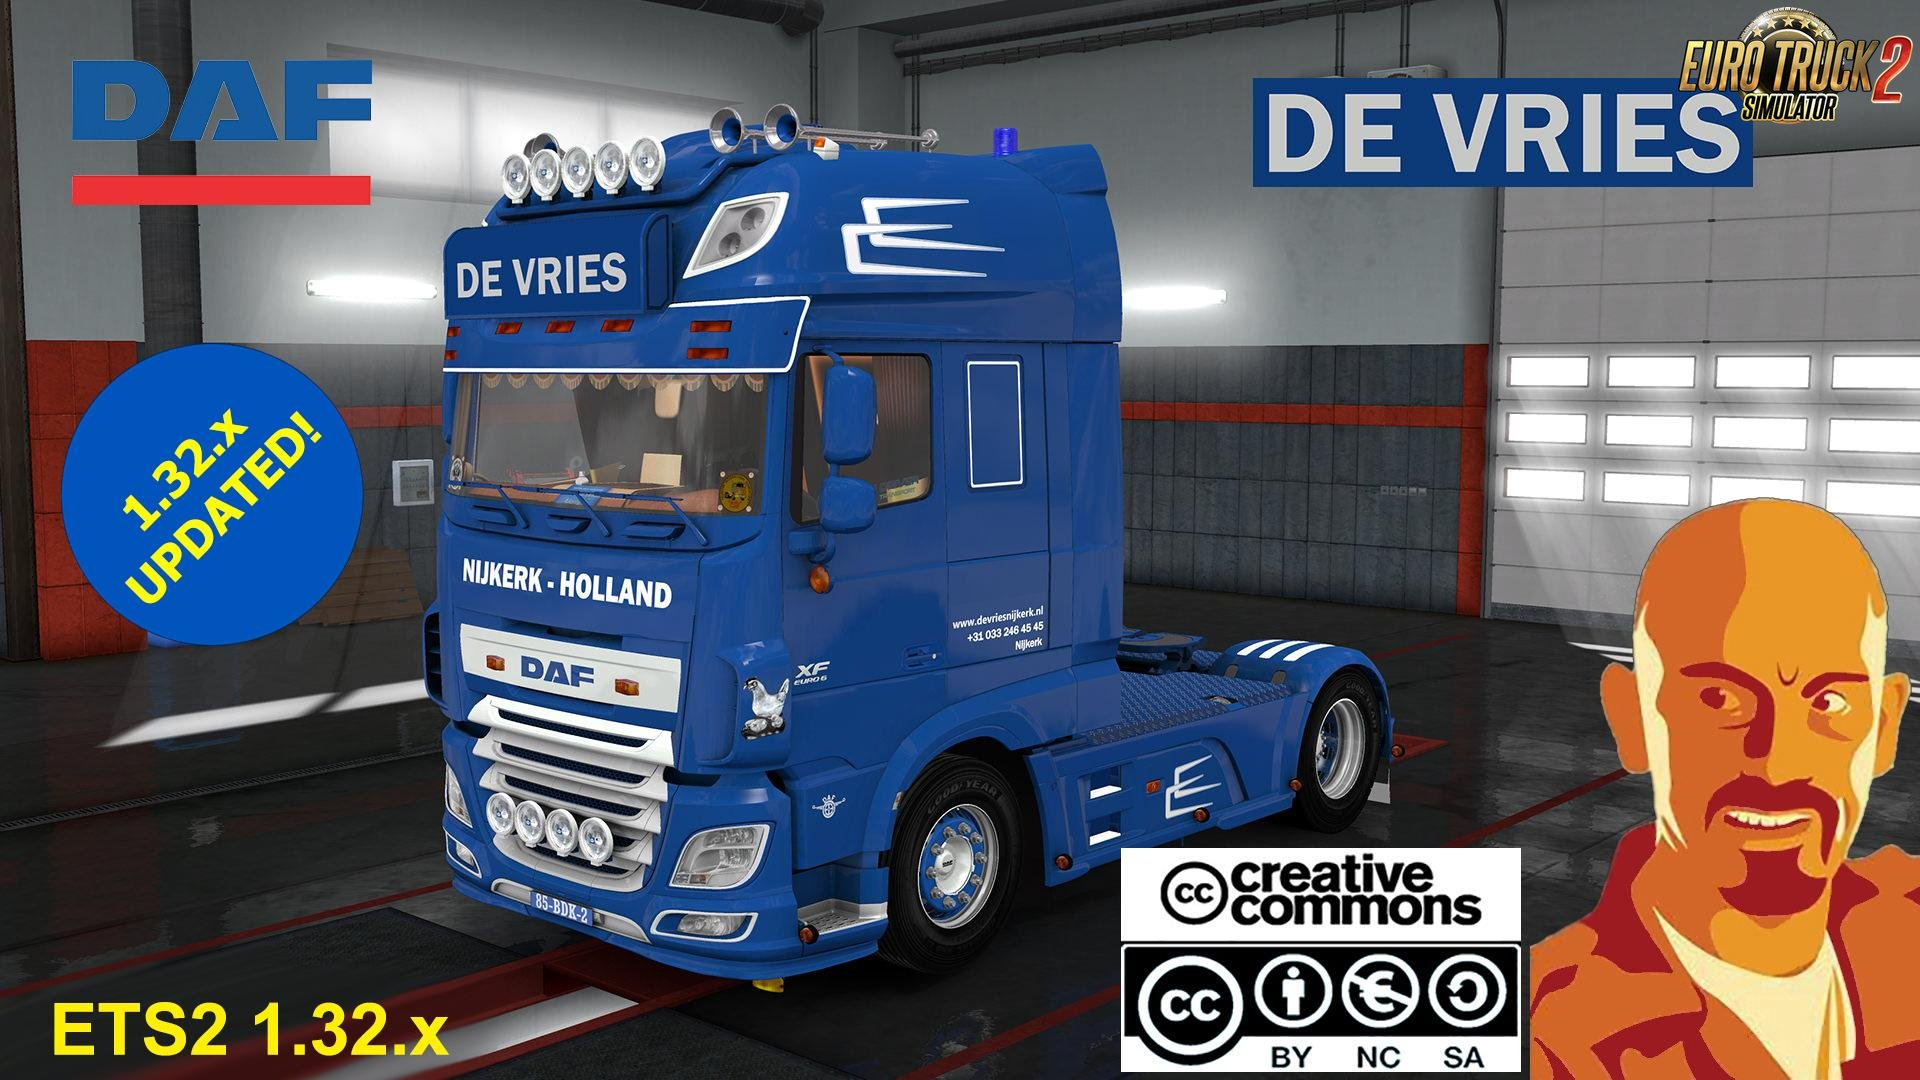 DAF XF 116 De Vries and Trailer (Recovered) for Ets2 [1.32.x]